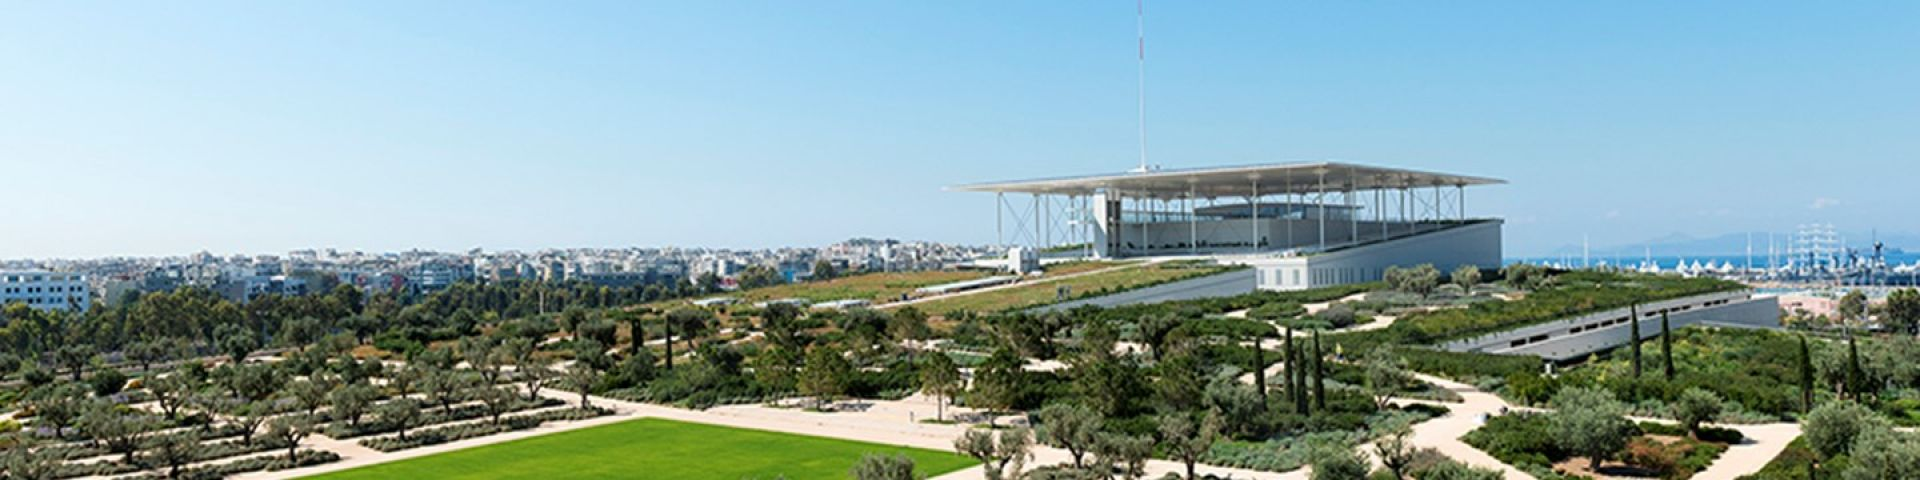 The SNFCC at Channel E - Εικόνα